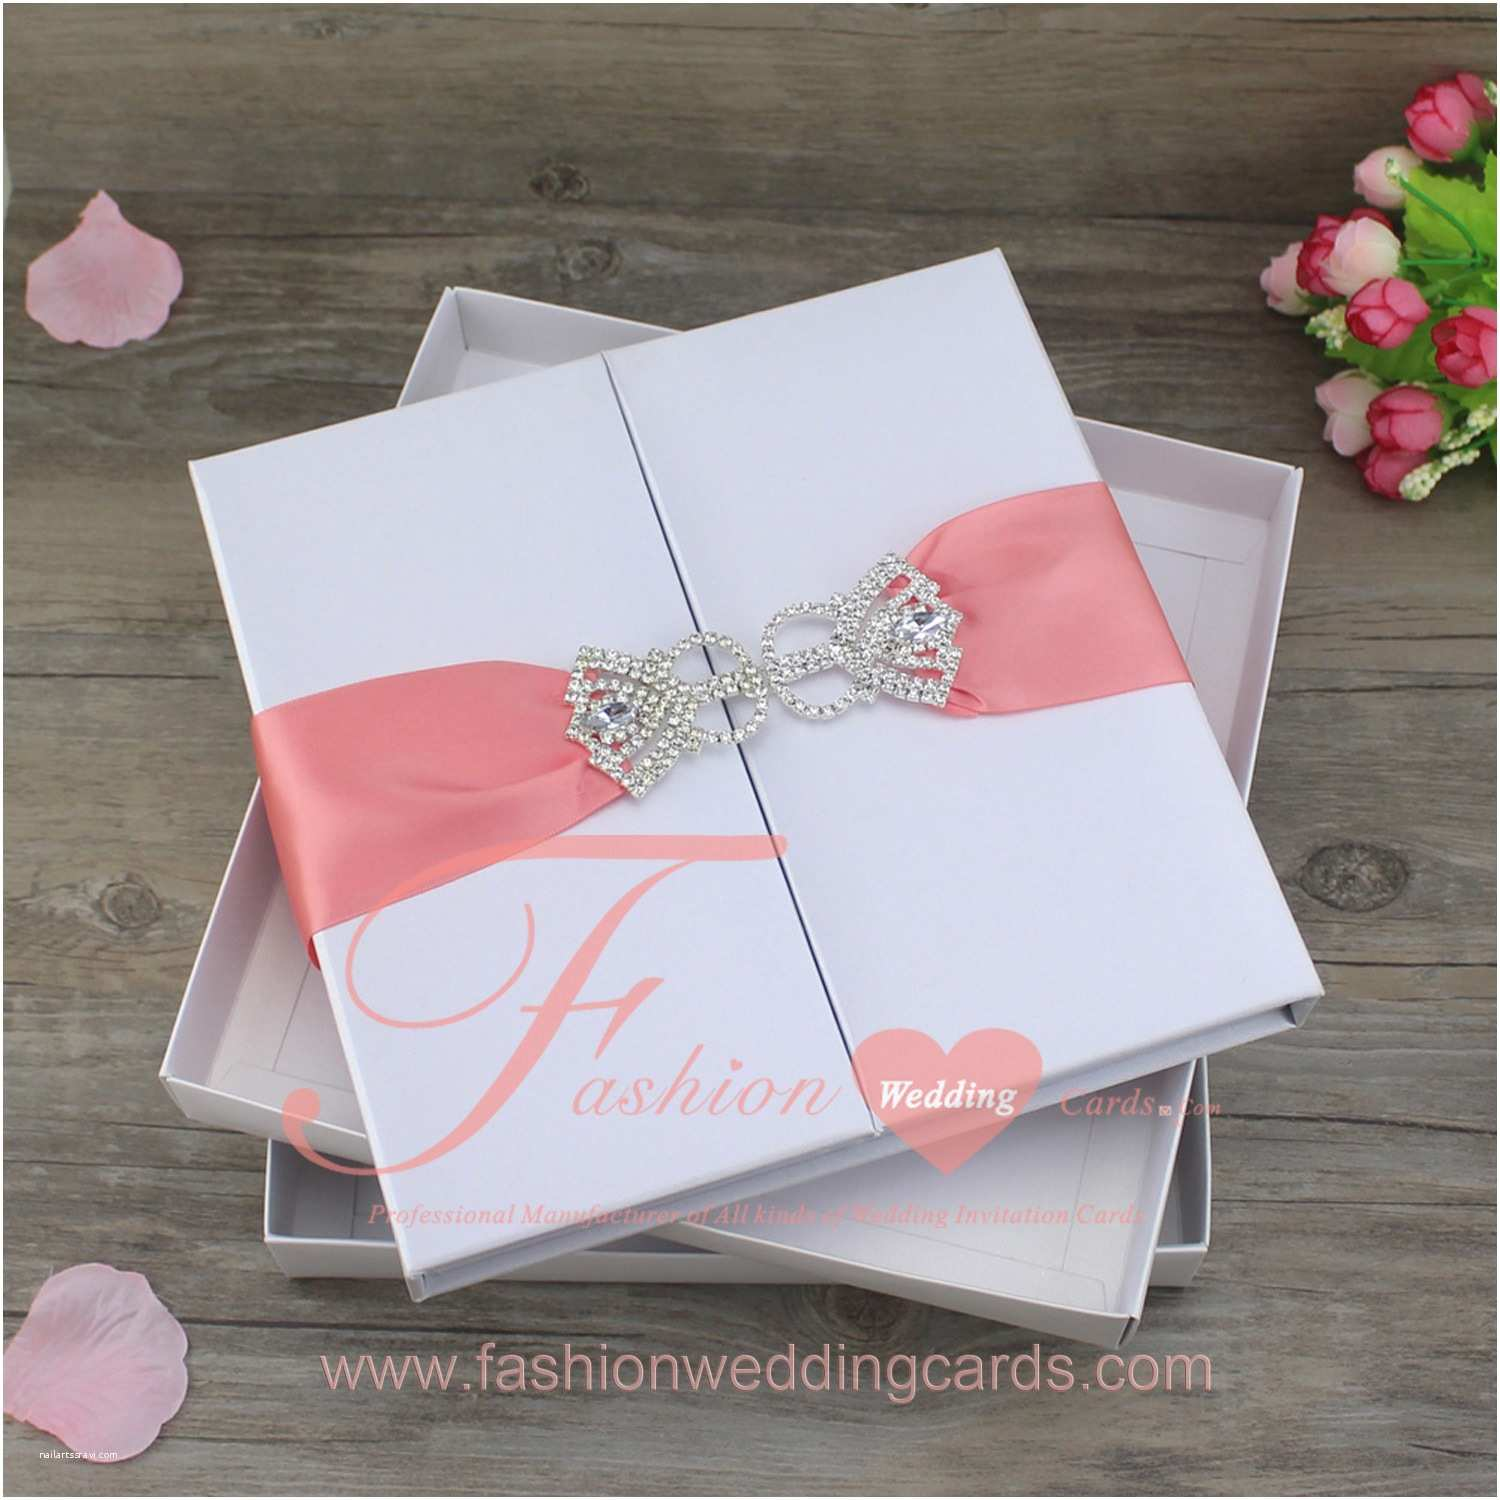 Bulk Wedding Invitations Silk Boxes for Invitations wholesale